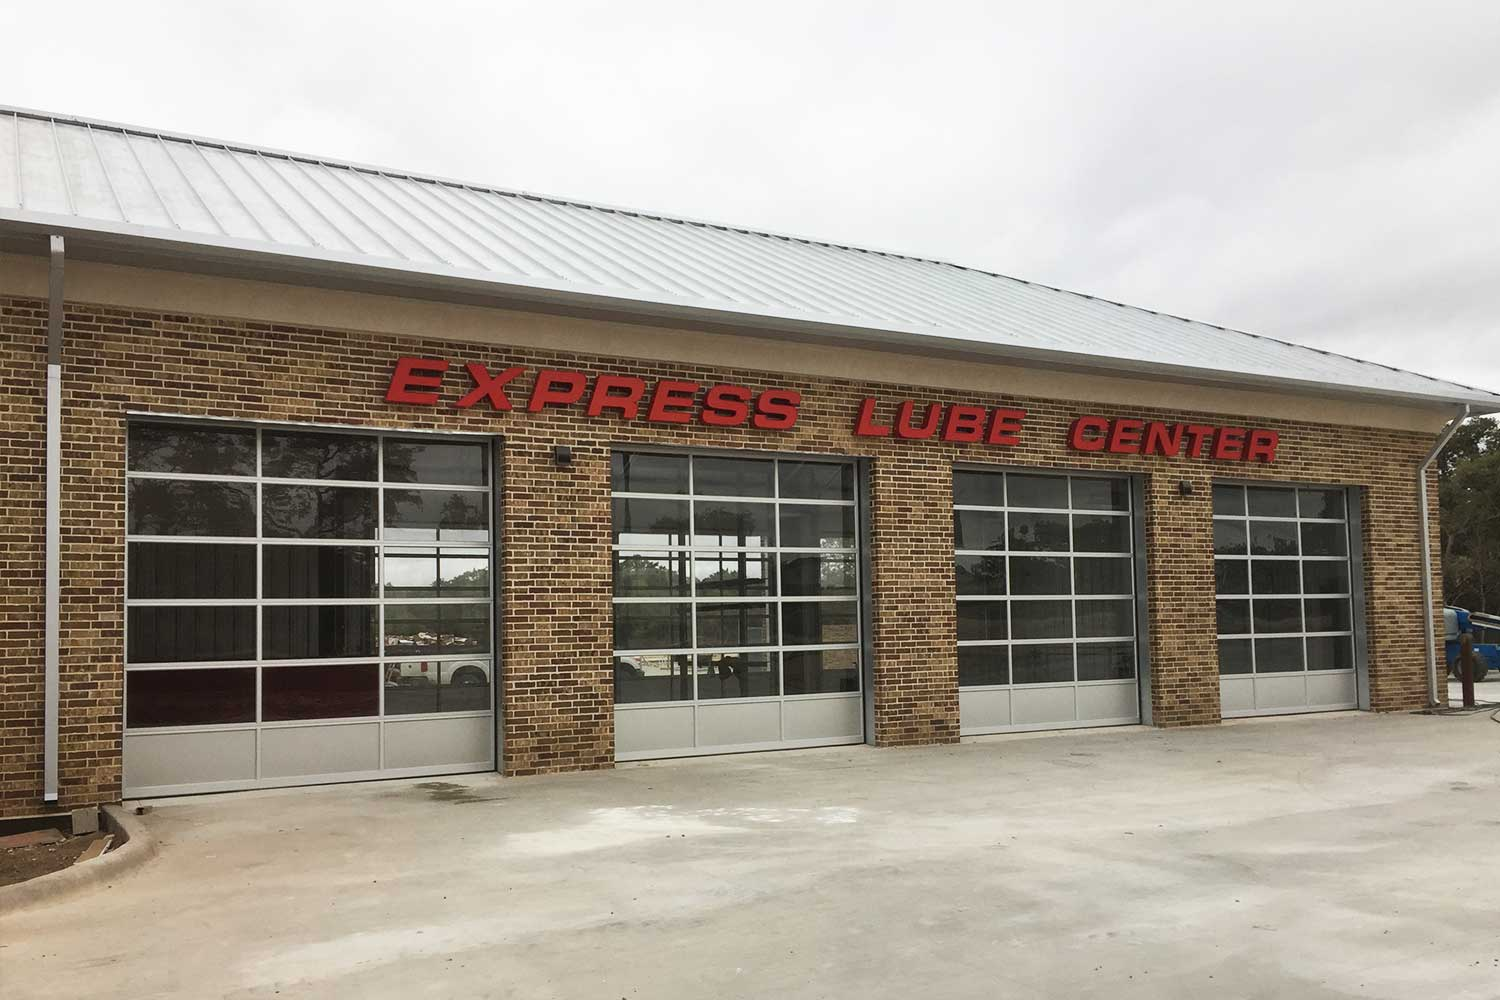 channel letter signage on exterior building of express lube